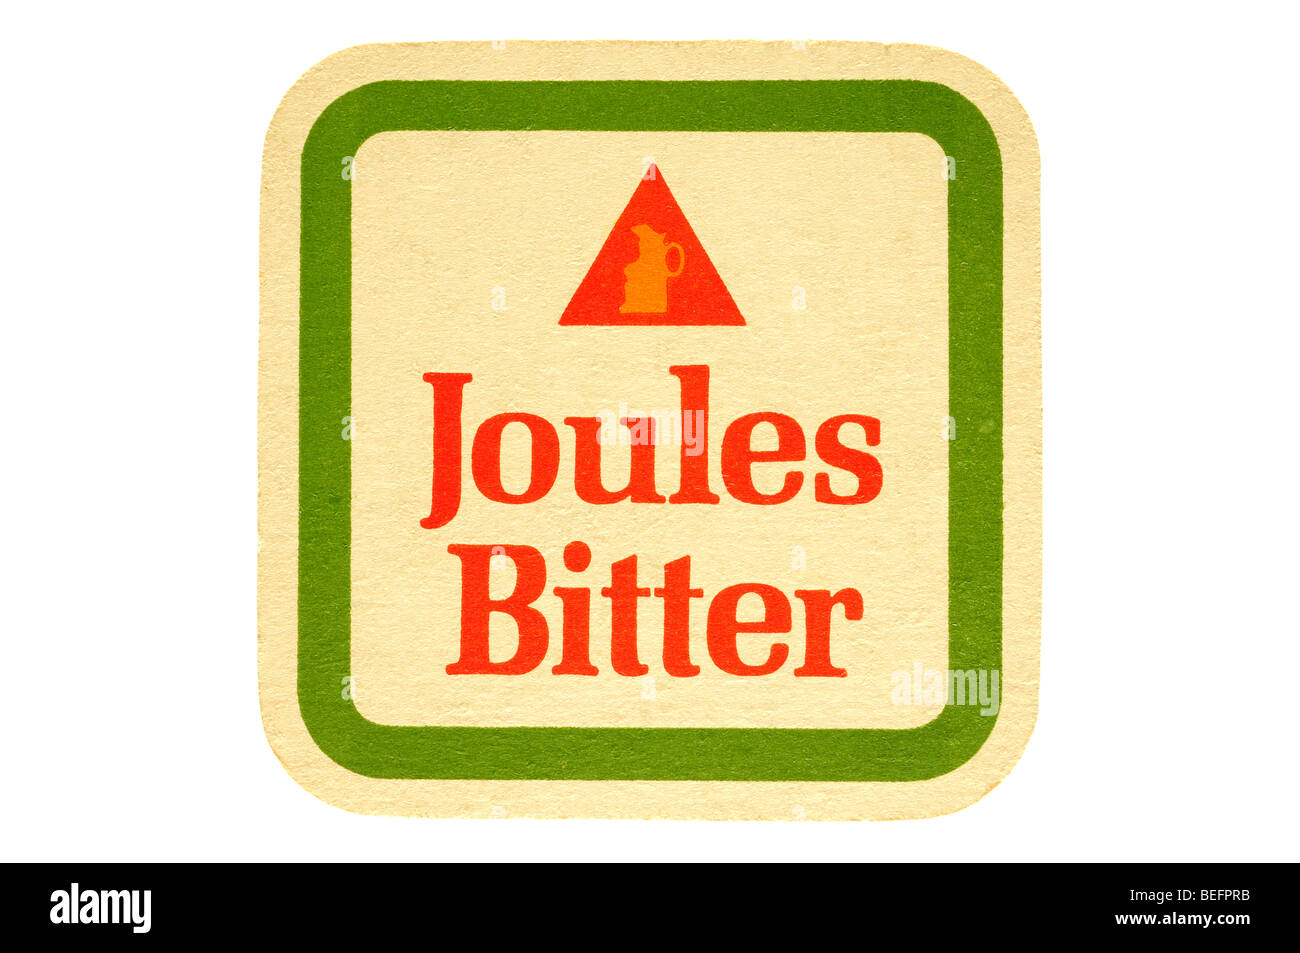 joules bitter - Stock Image